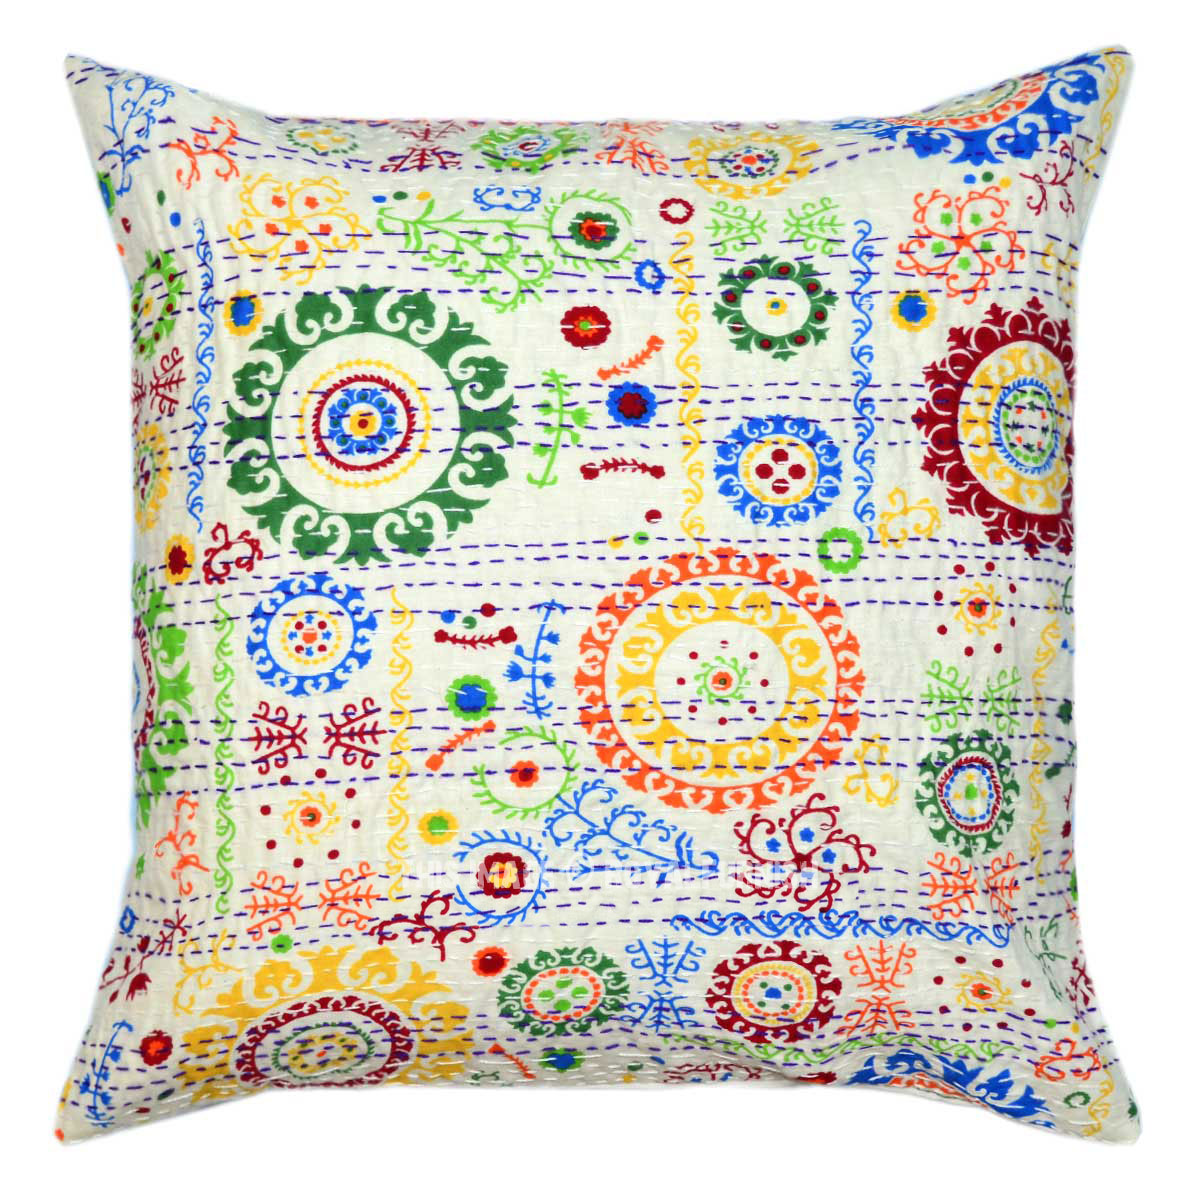 Throw Pillow Round : 18X18 White Decorative Multi Round Circle Cotton Throw Pillow Cover - RoyalFurnish.com